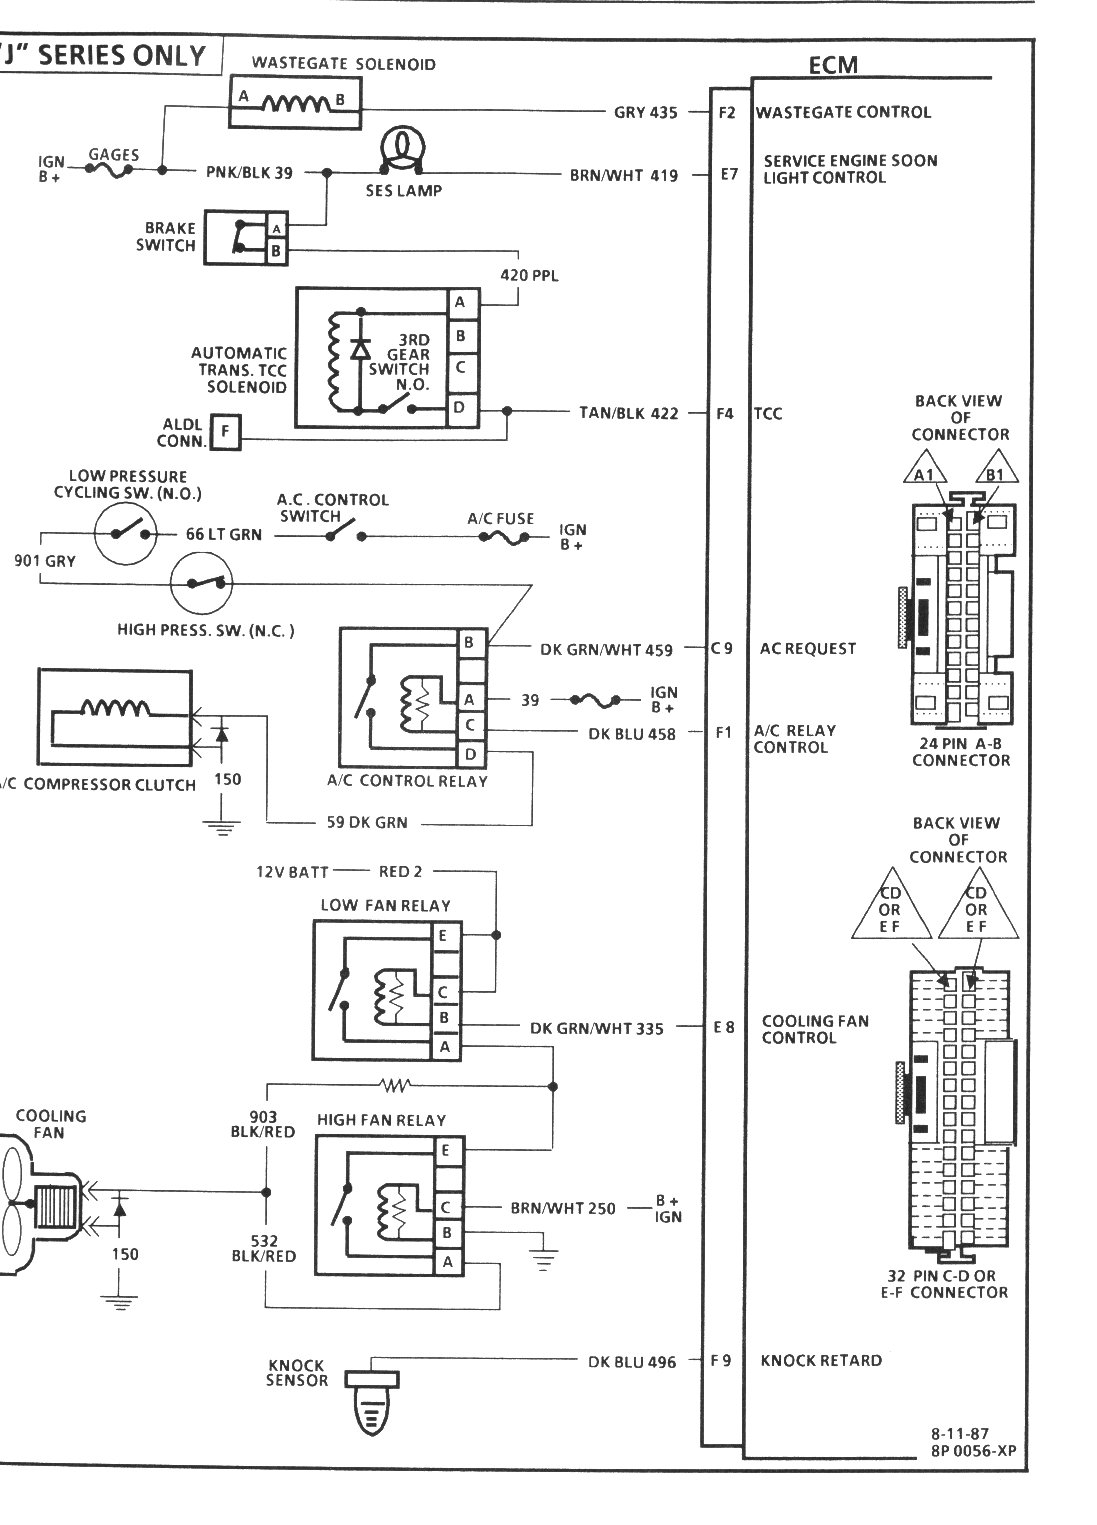 ddec 2 wiring diagram dual amplifier iii get free image about